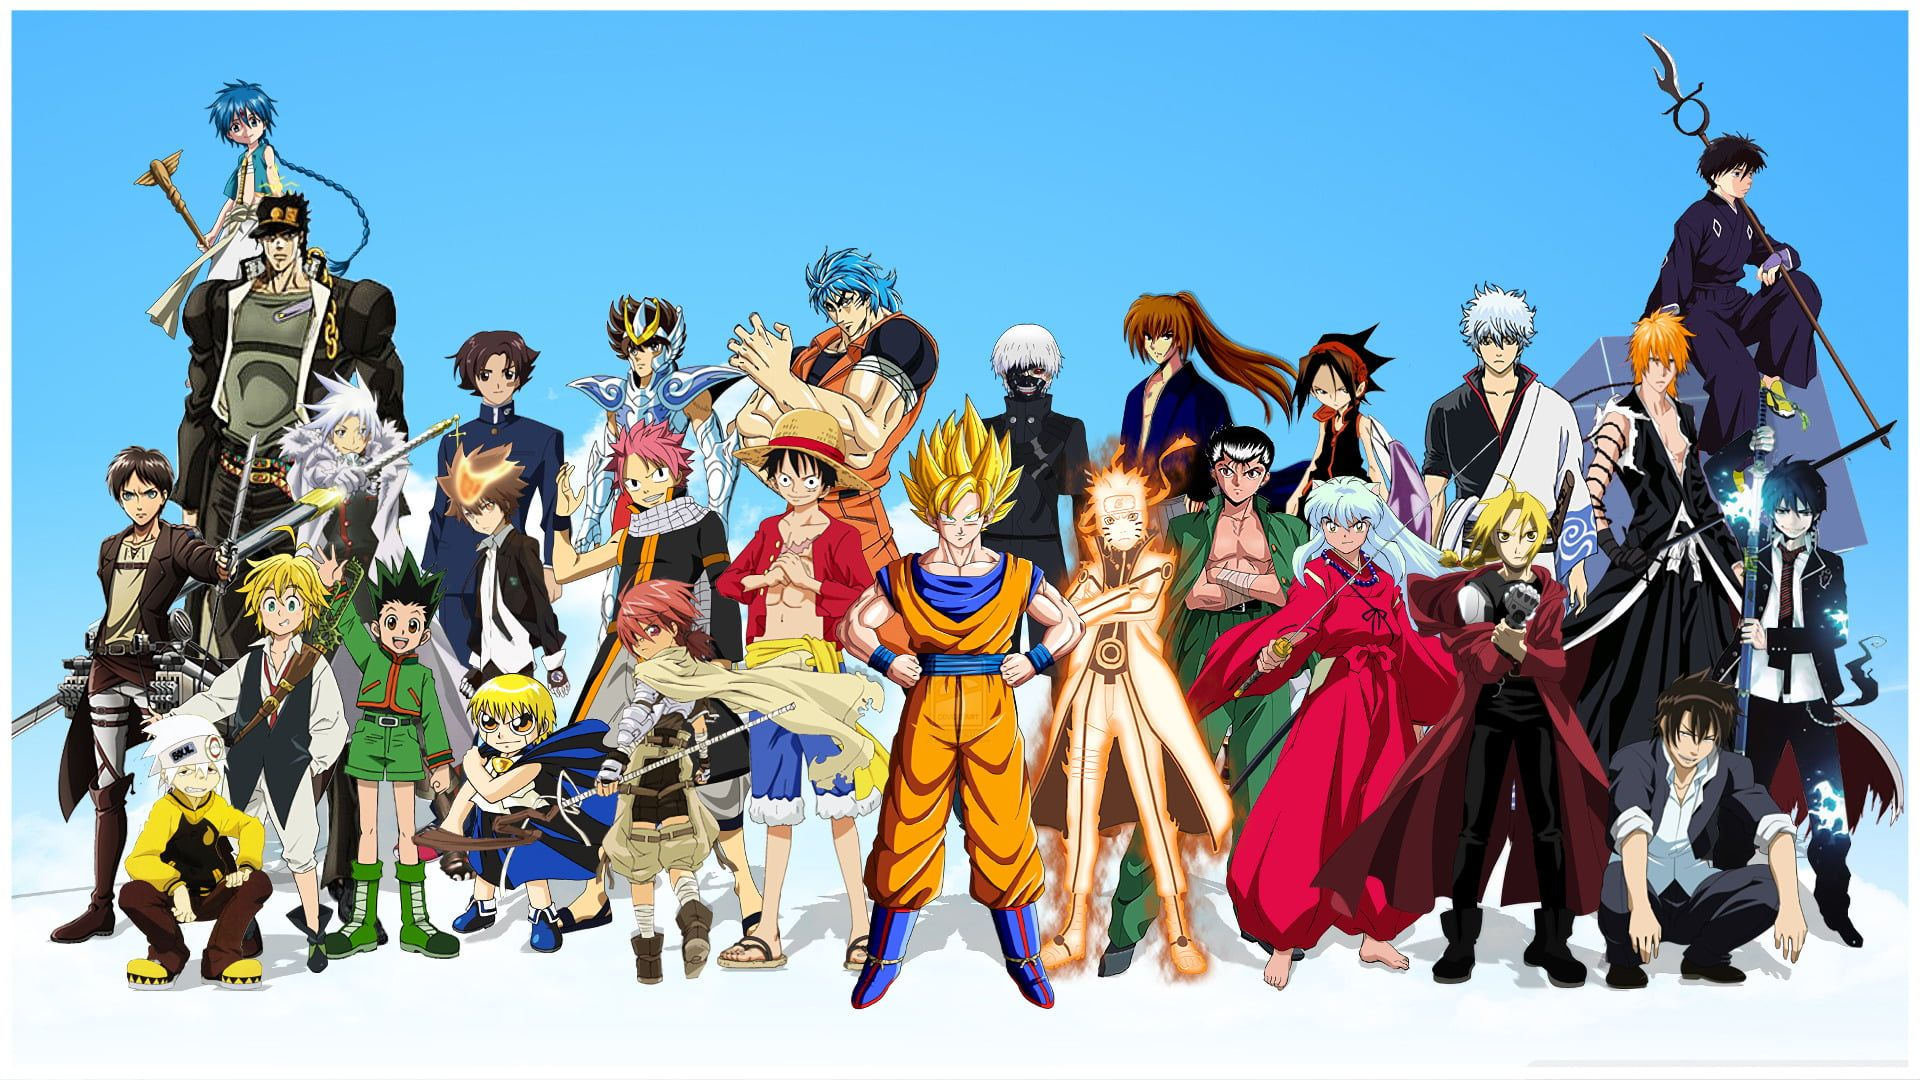 Shonen Jump Characters Anime Crossover Ao No Exorcist Attack On Titan Bleach Blue Exorcist Dragon Ball Anime Crossover All Anime Characters Anime Characters Anime crossover wallpaper 1920x1080